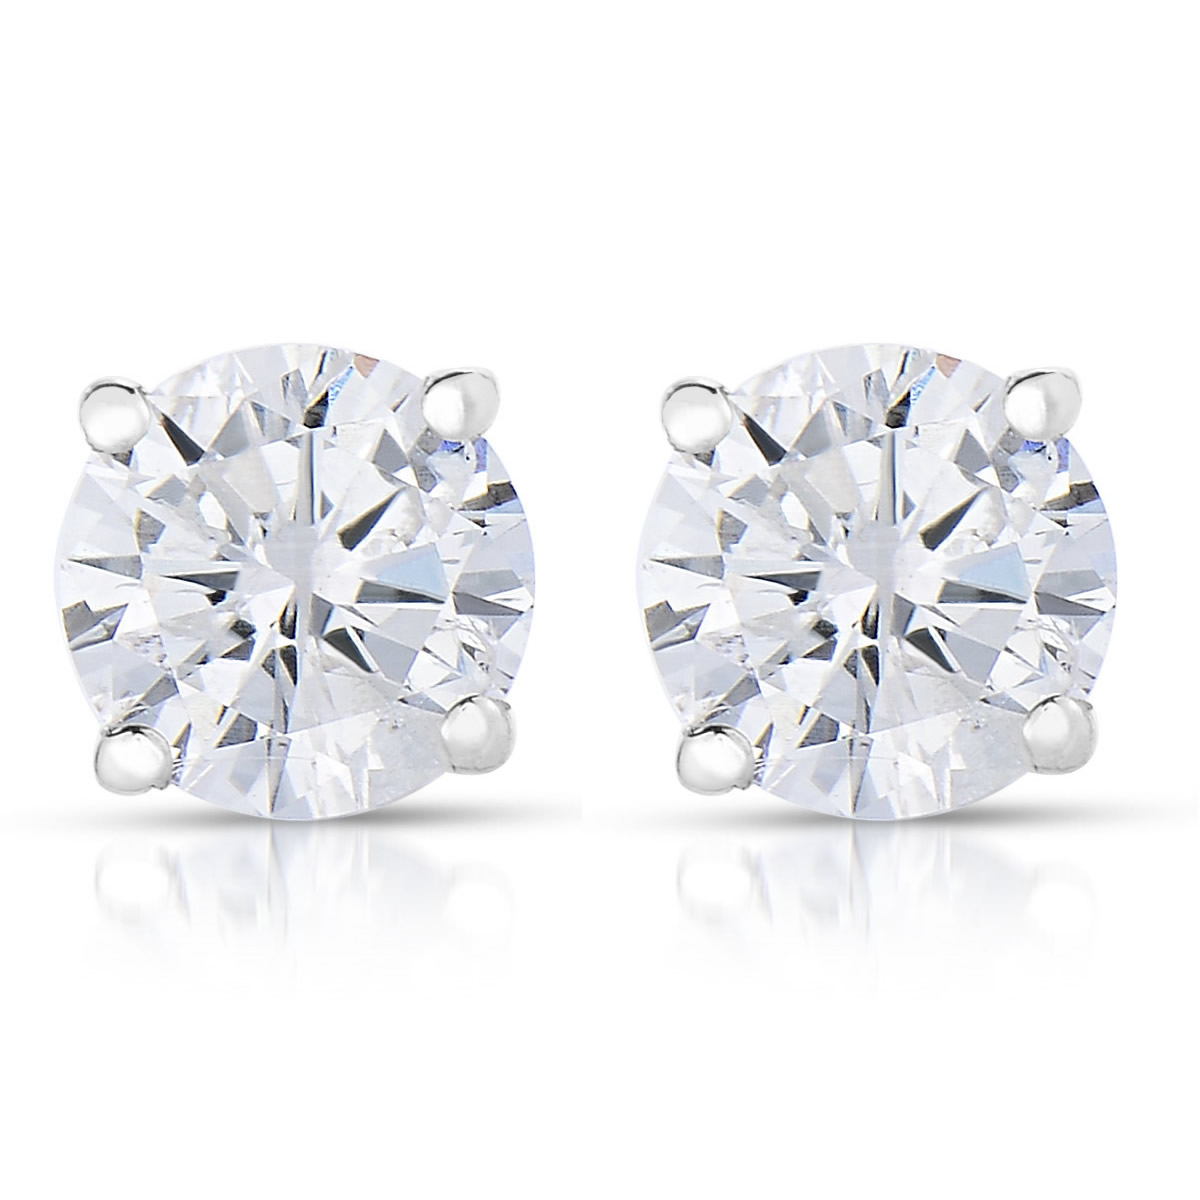 Vir Jewels 1/4 cttw (I2-I3 Clarity, K-M Color) Round Diamond Stud Earrings 14K White Gold